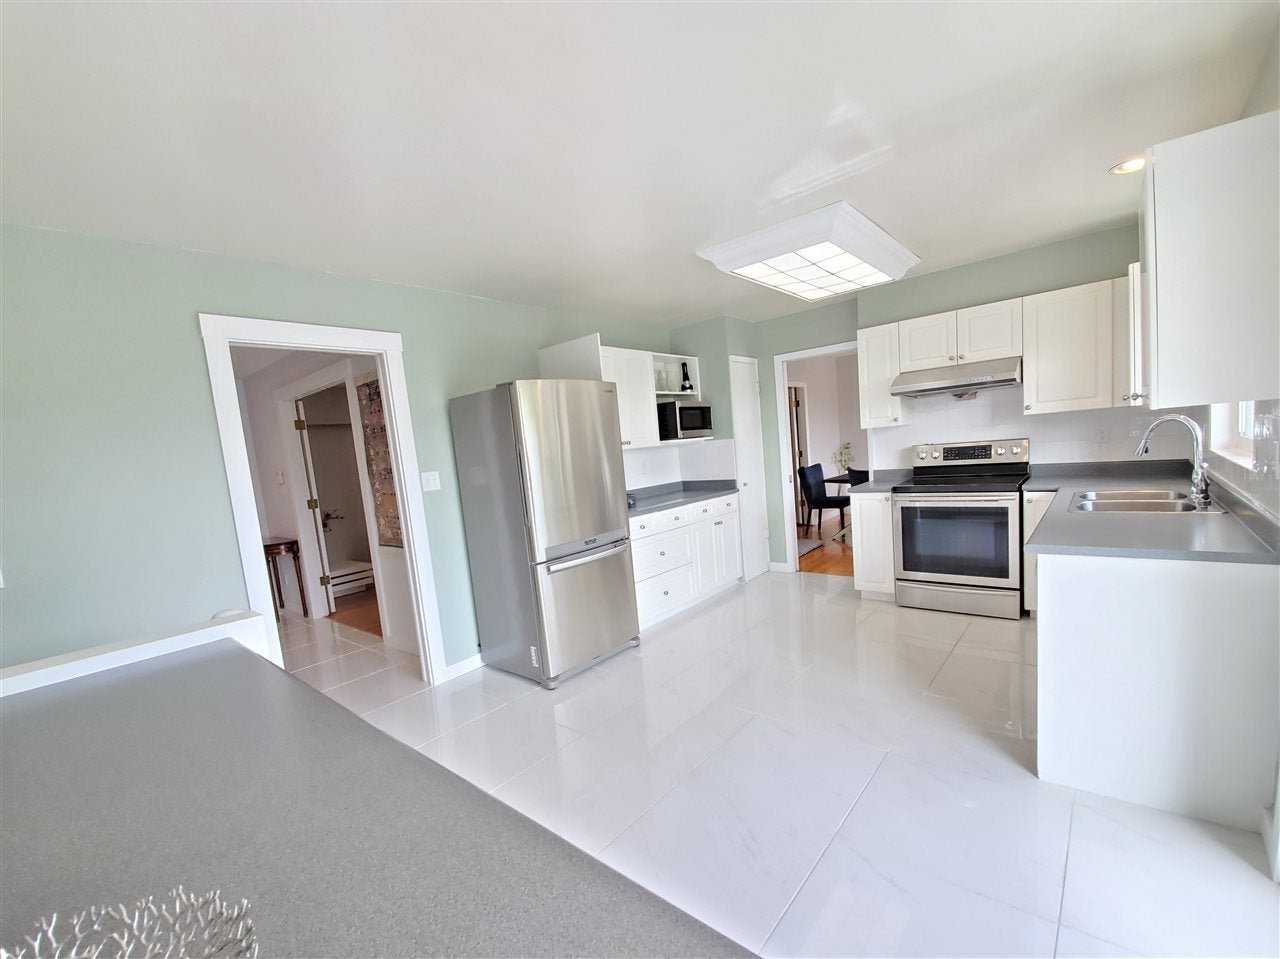 670 ST. ANDREWS ROAD - British Properties House/Single Family for sale, 5 Bedrooms (R2517540) - #8